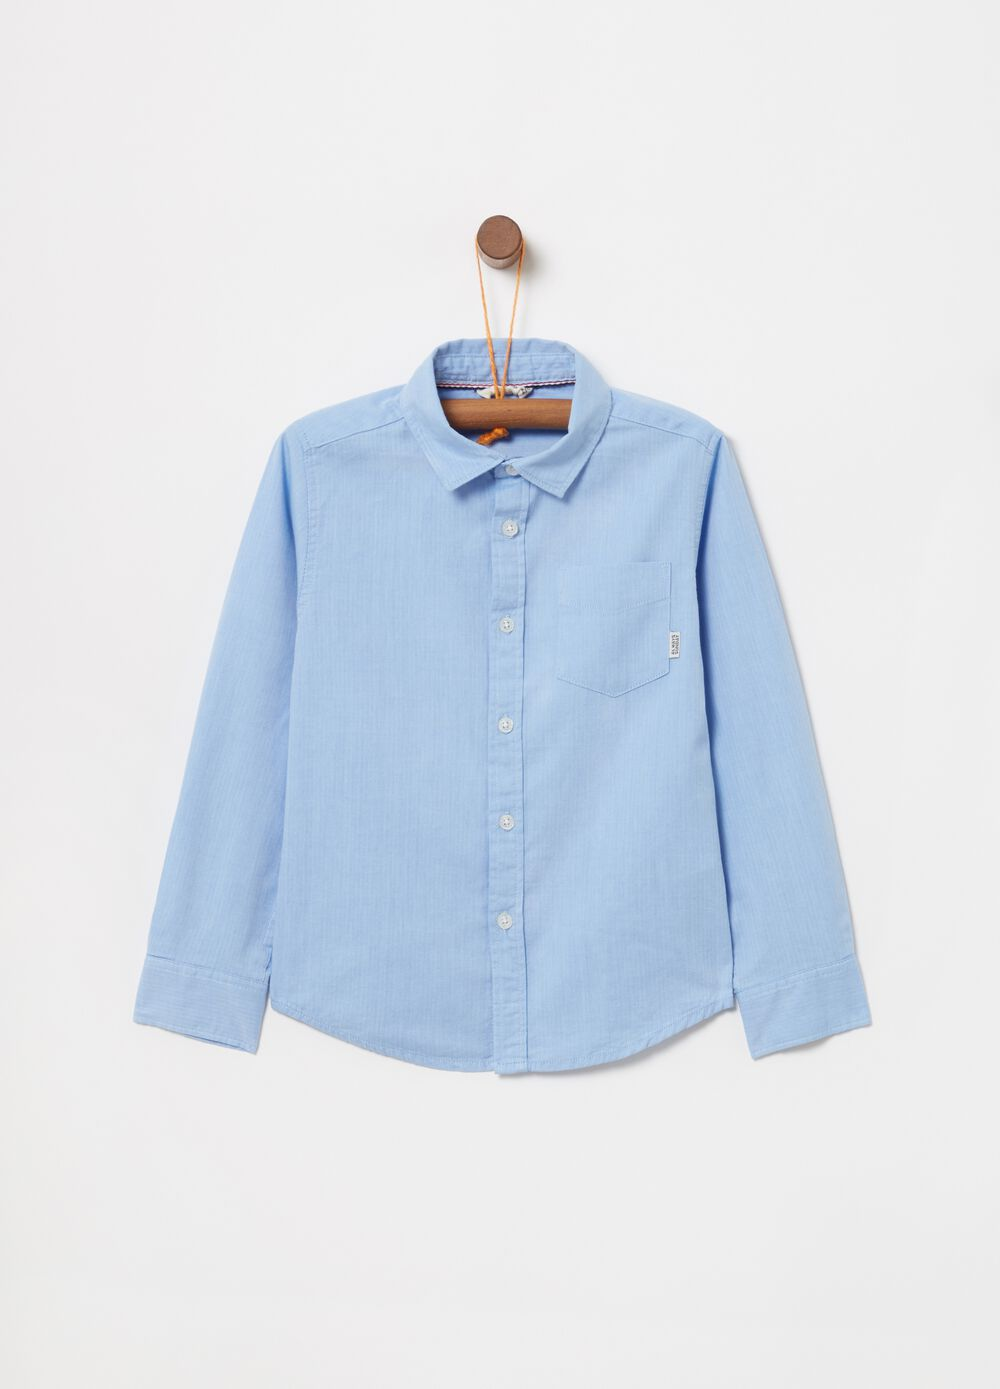 Shirt in 100% cotton with pocket